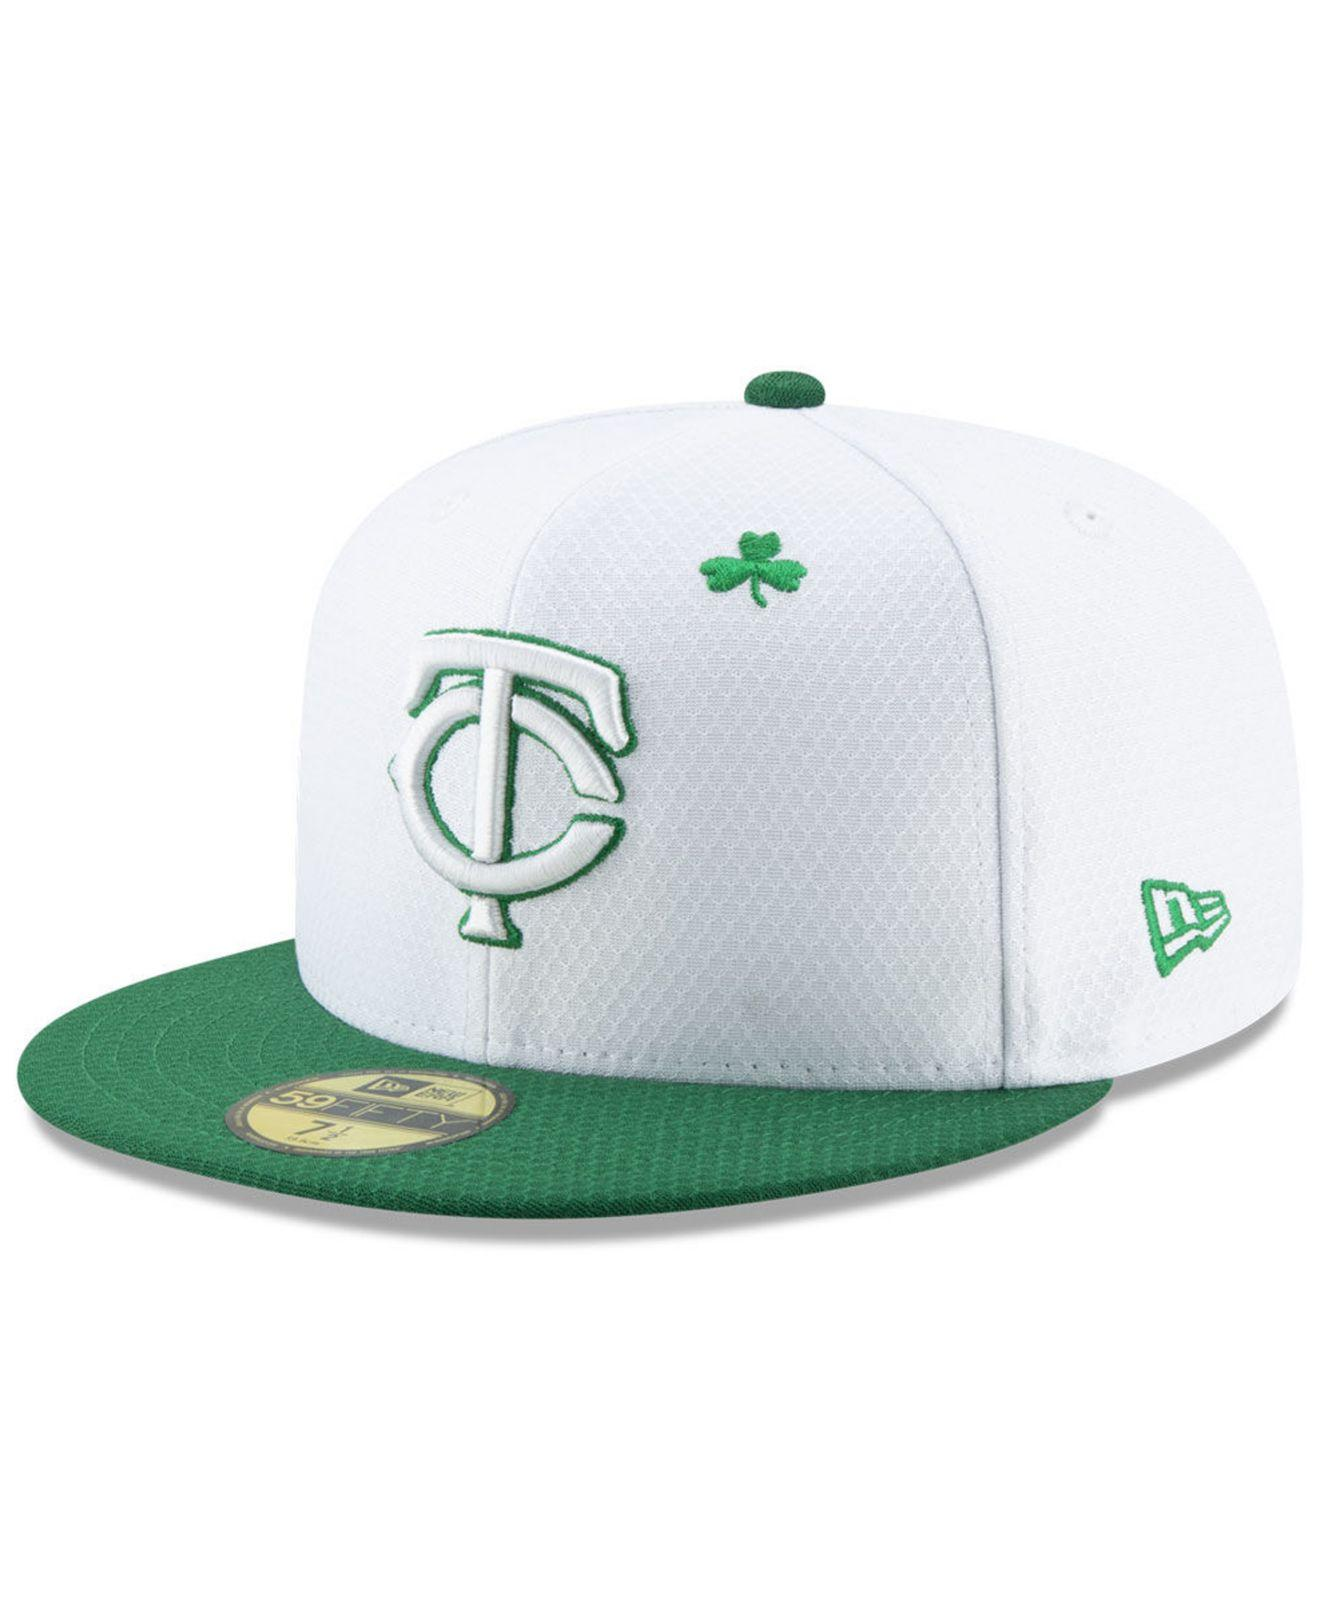 reputable site 2f831 a19b9 KTZ. Men s White Minnesota Twins St. Pattys Day 59fifty-fitted Cap